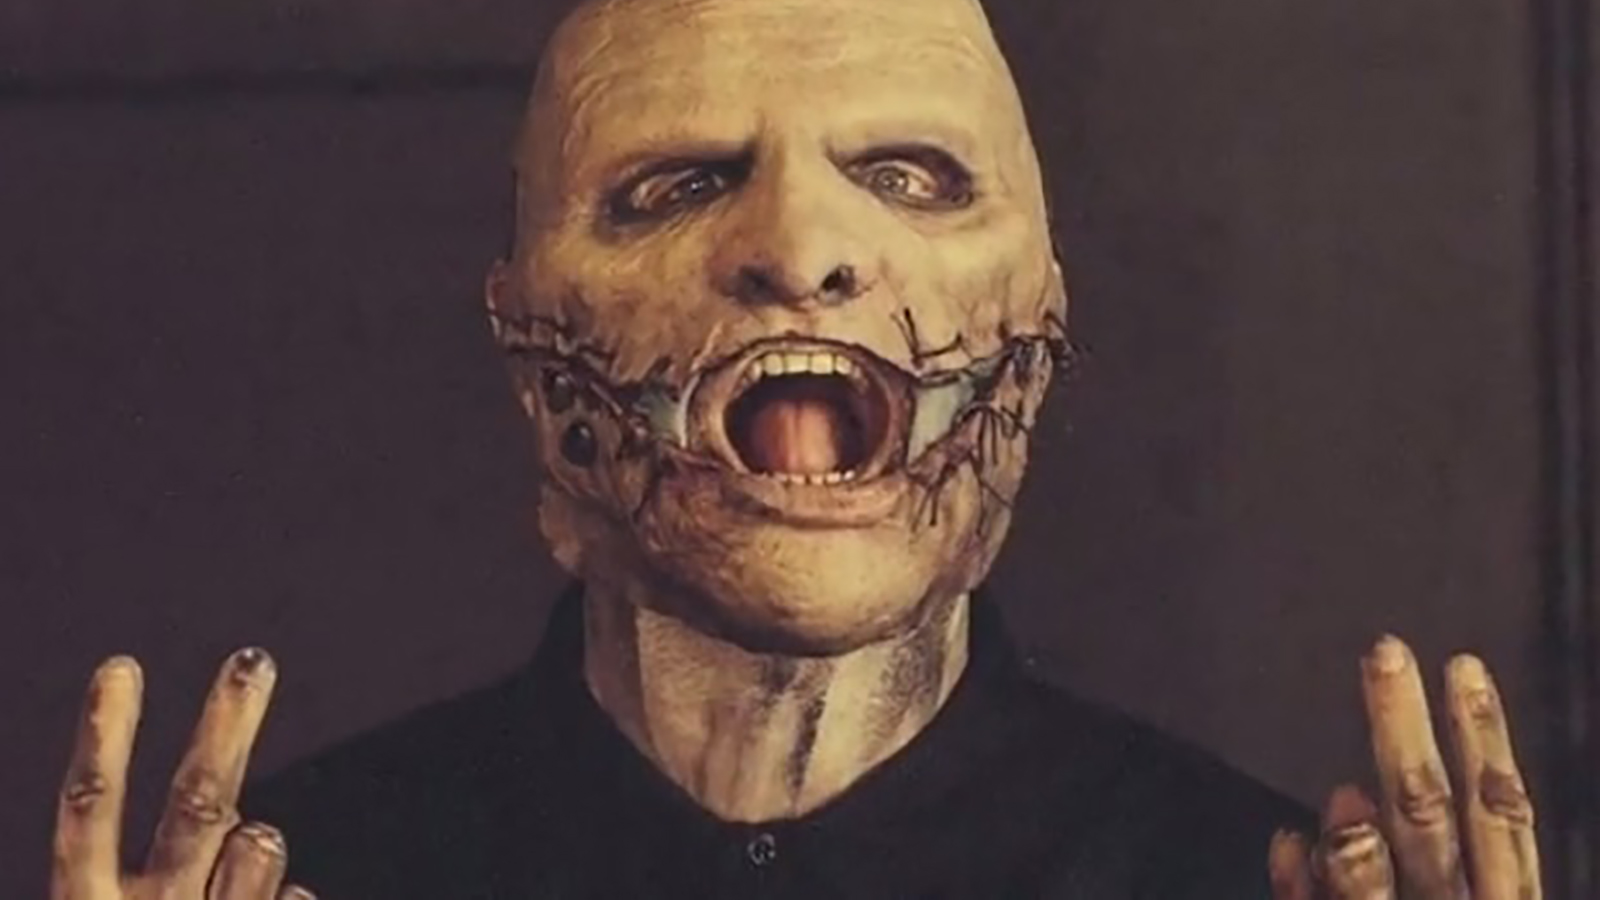 Slipknot's Corey Taylor on '.5' Album, Paul Gray, Joey Jordison, New Members